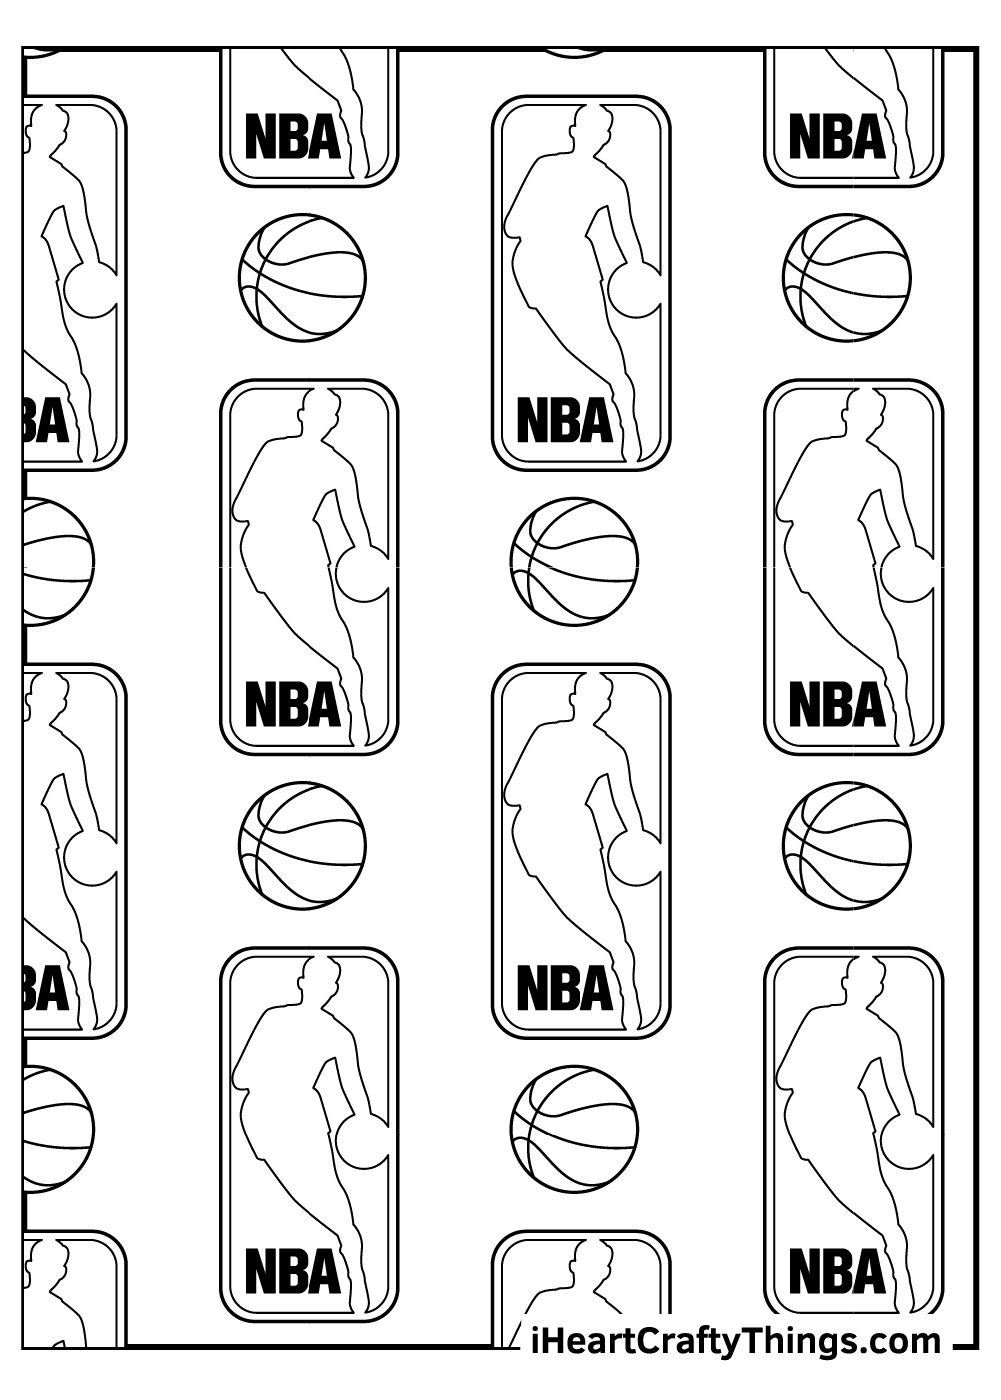 NBA logo coloring pages free download